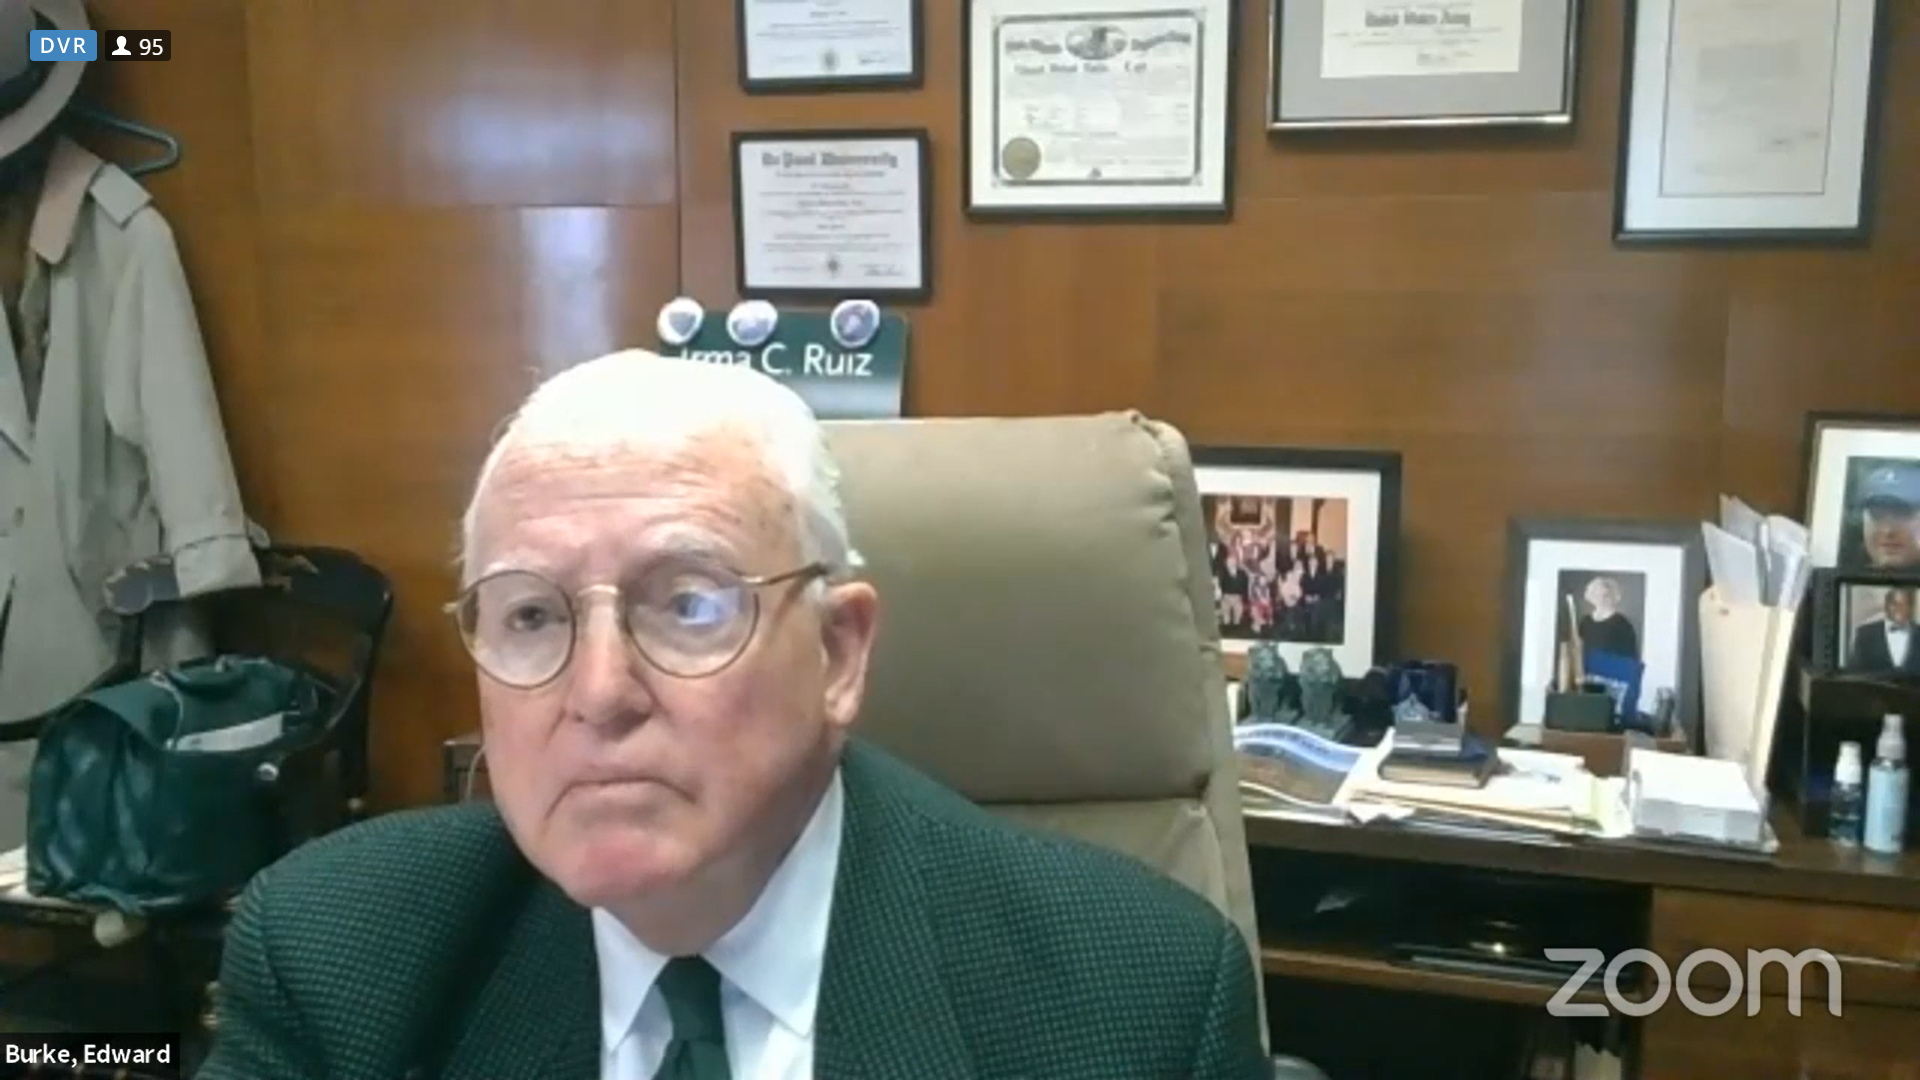 Indicted Ald Ed Burke suggests City Hall cook the books a little to avoid prop tax hike